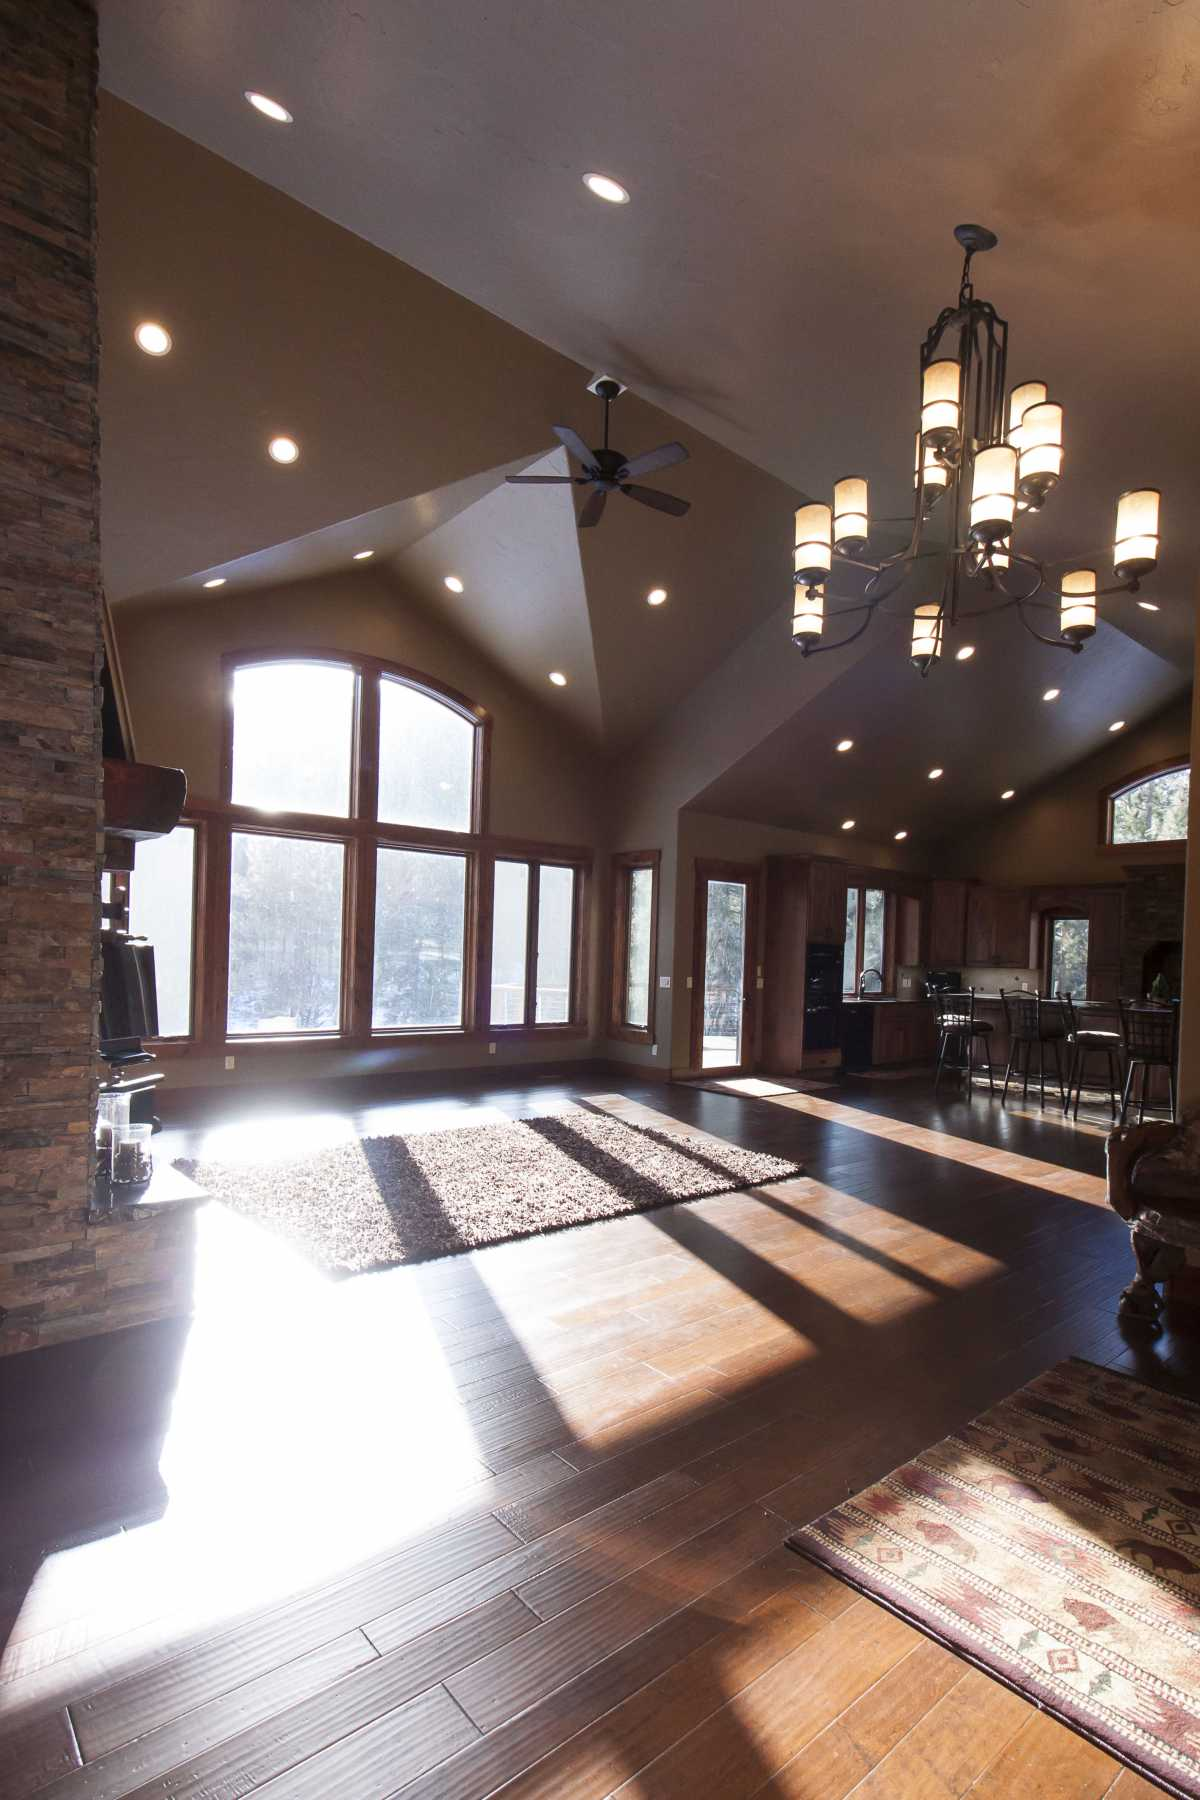 The large great room windows bring in a lot of light and are highlighted by custom-built arched trim.